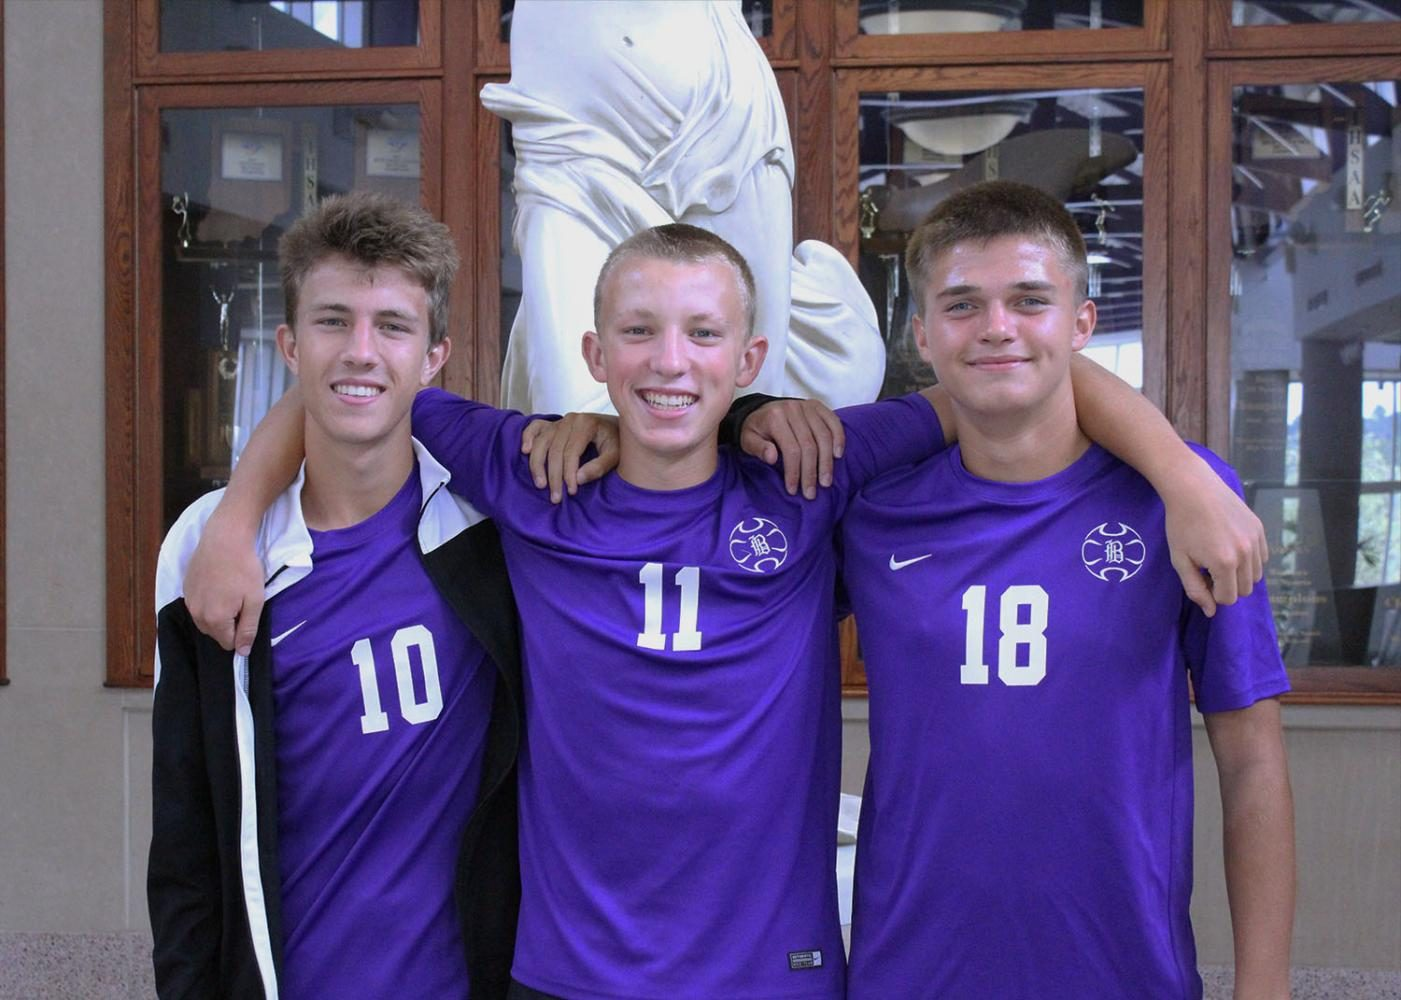 First Boy's Soccer home game tonight at 7:30!